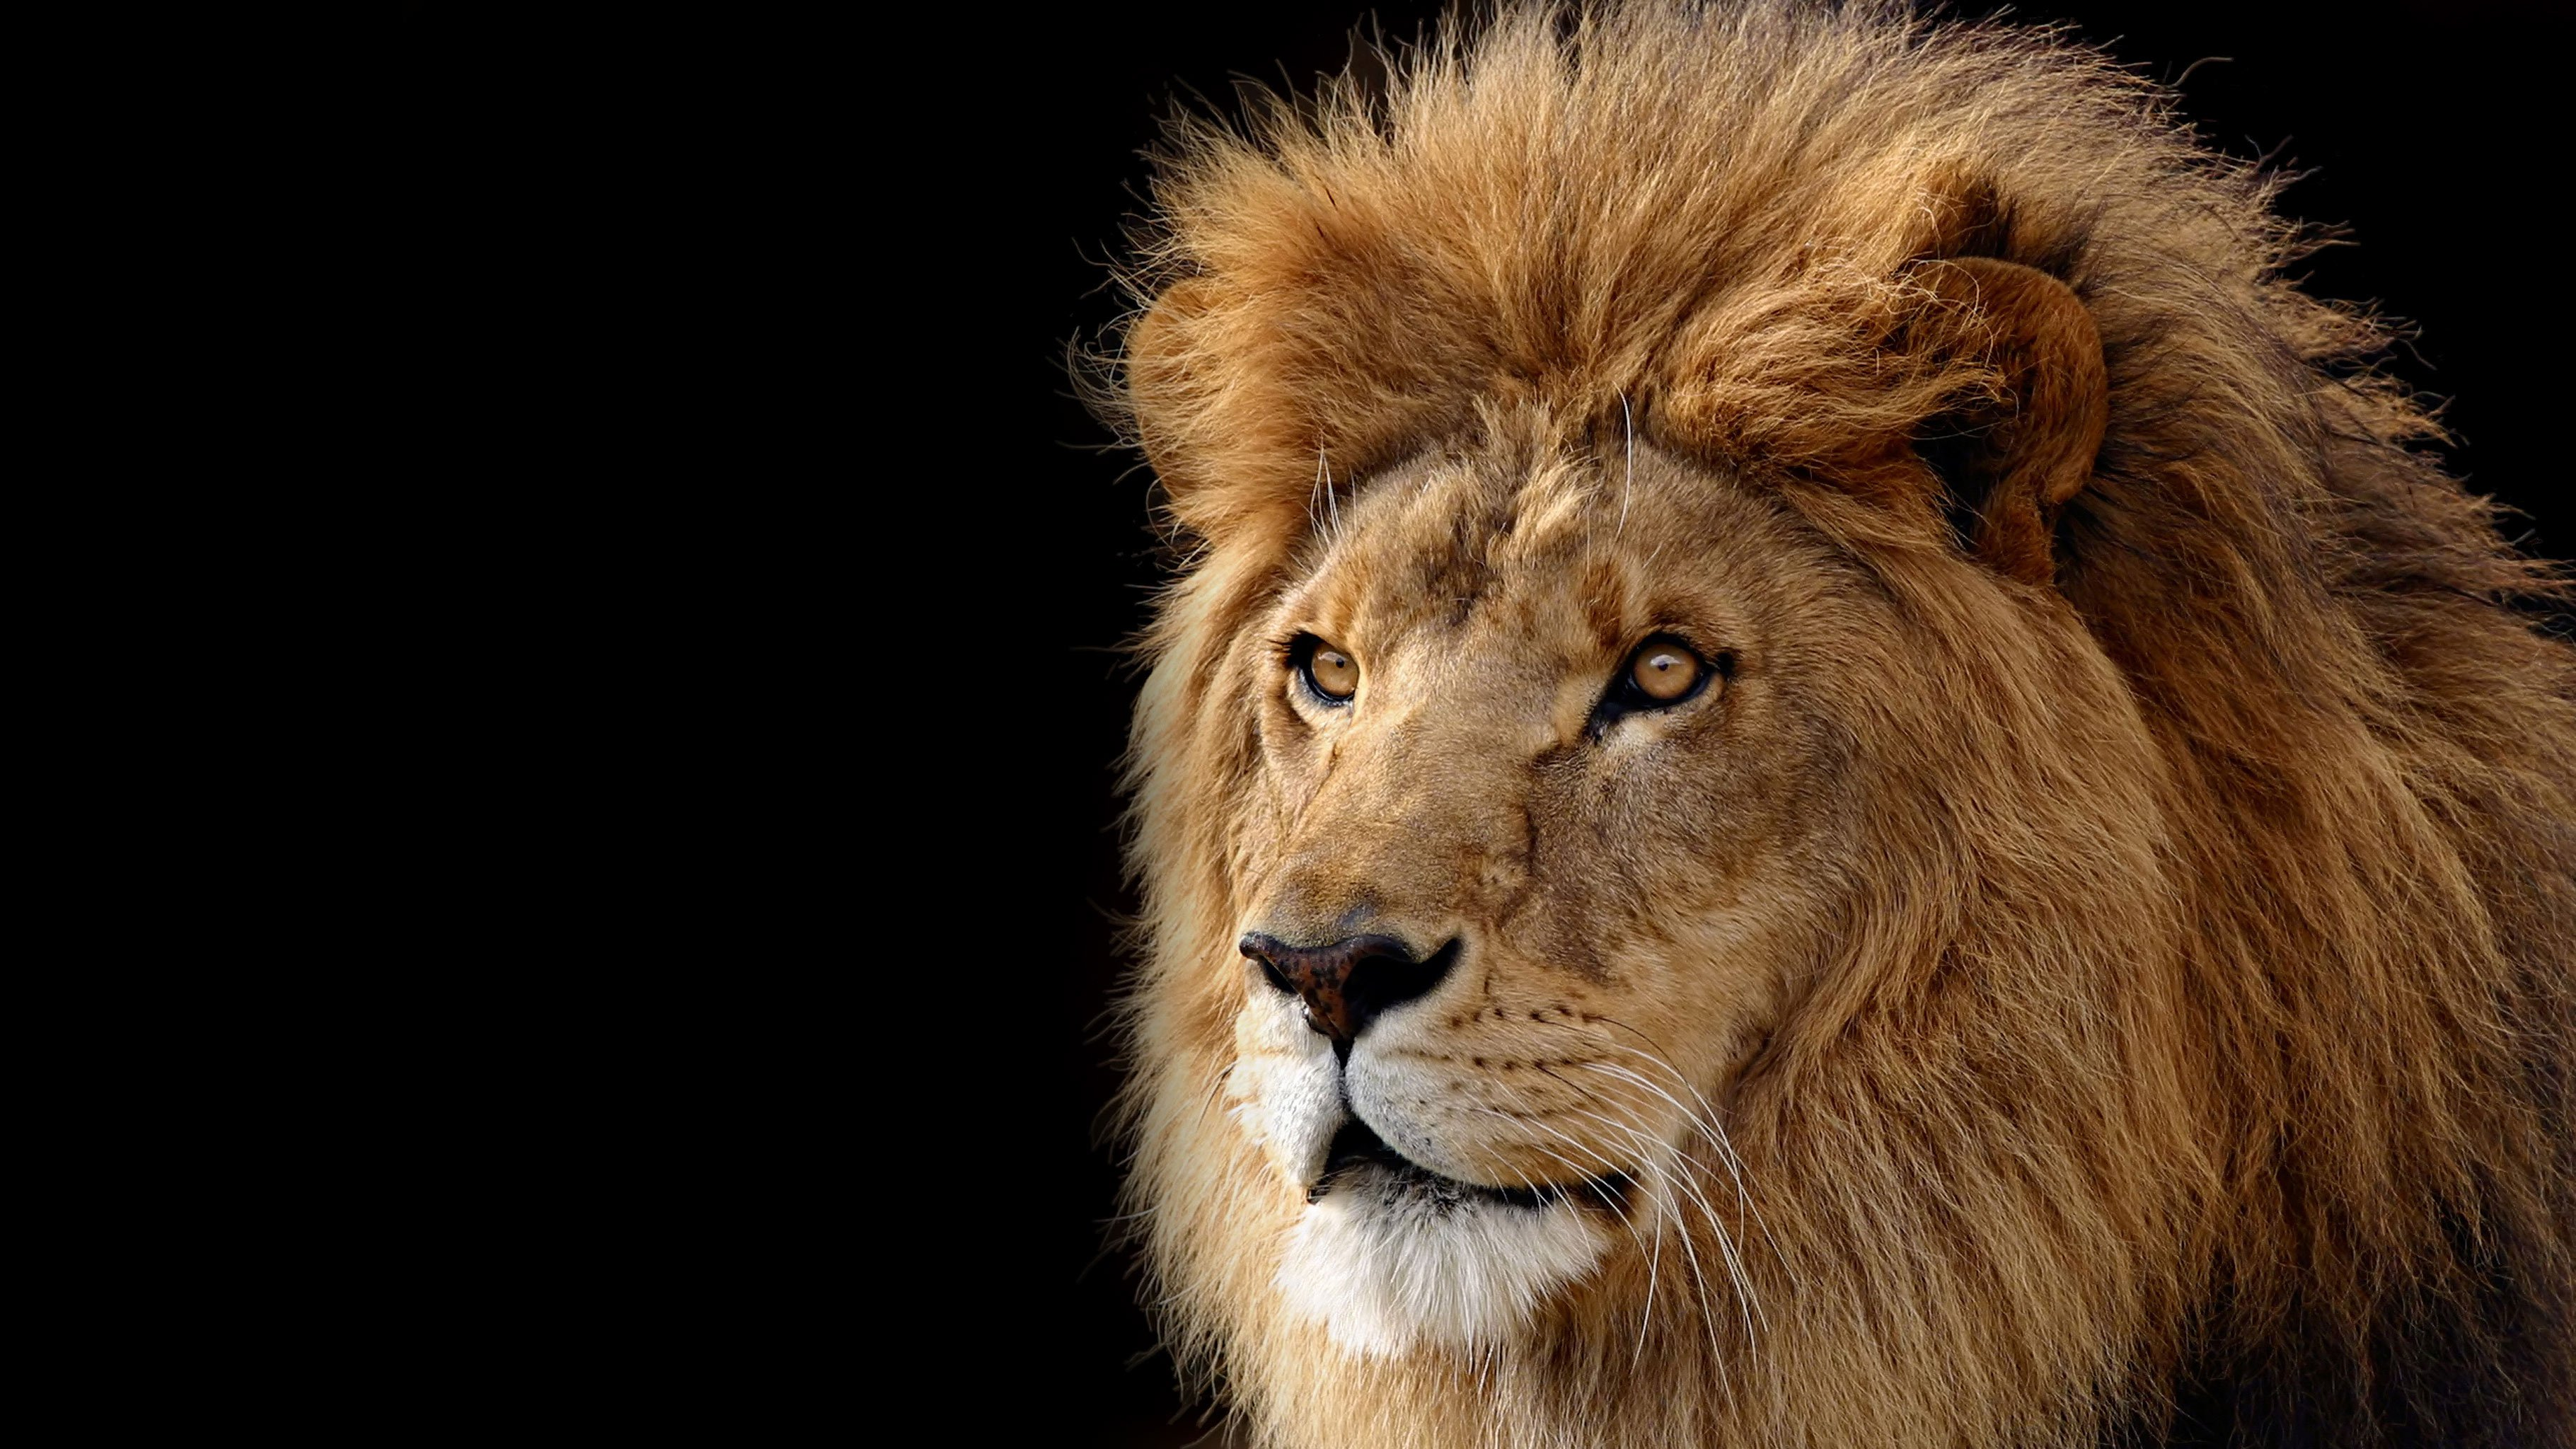 Images Of Lion With Scary Faces Calto